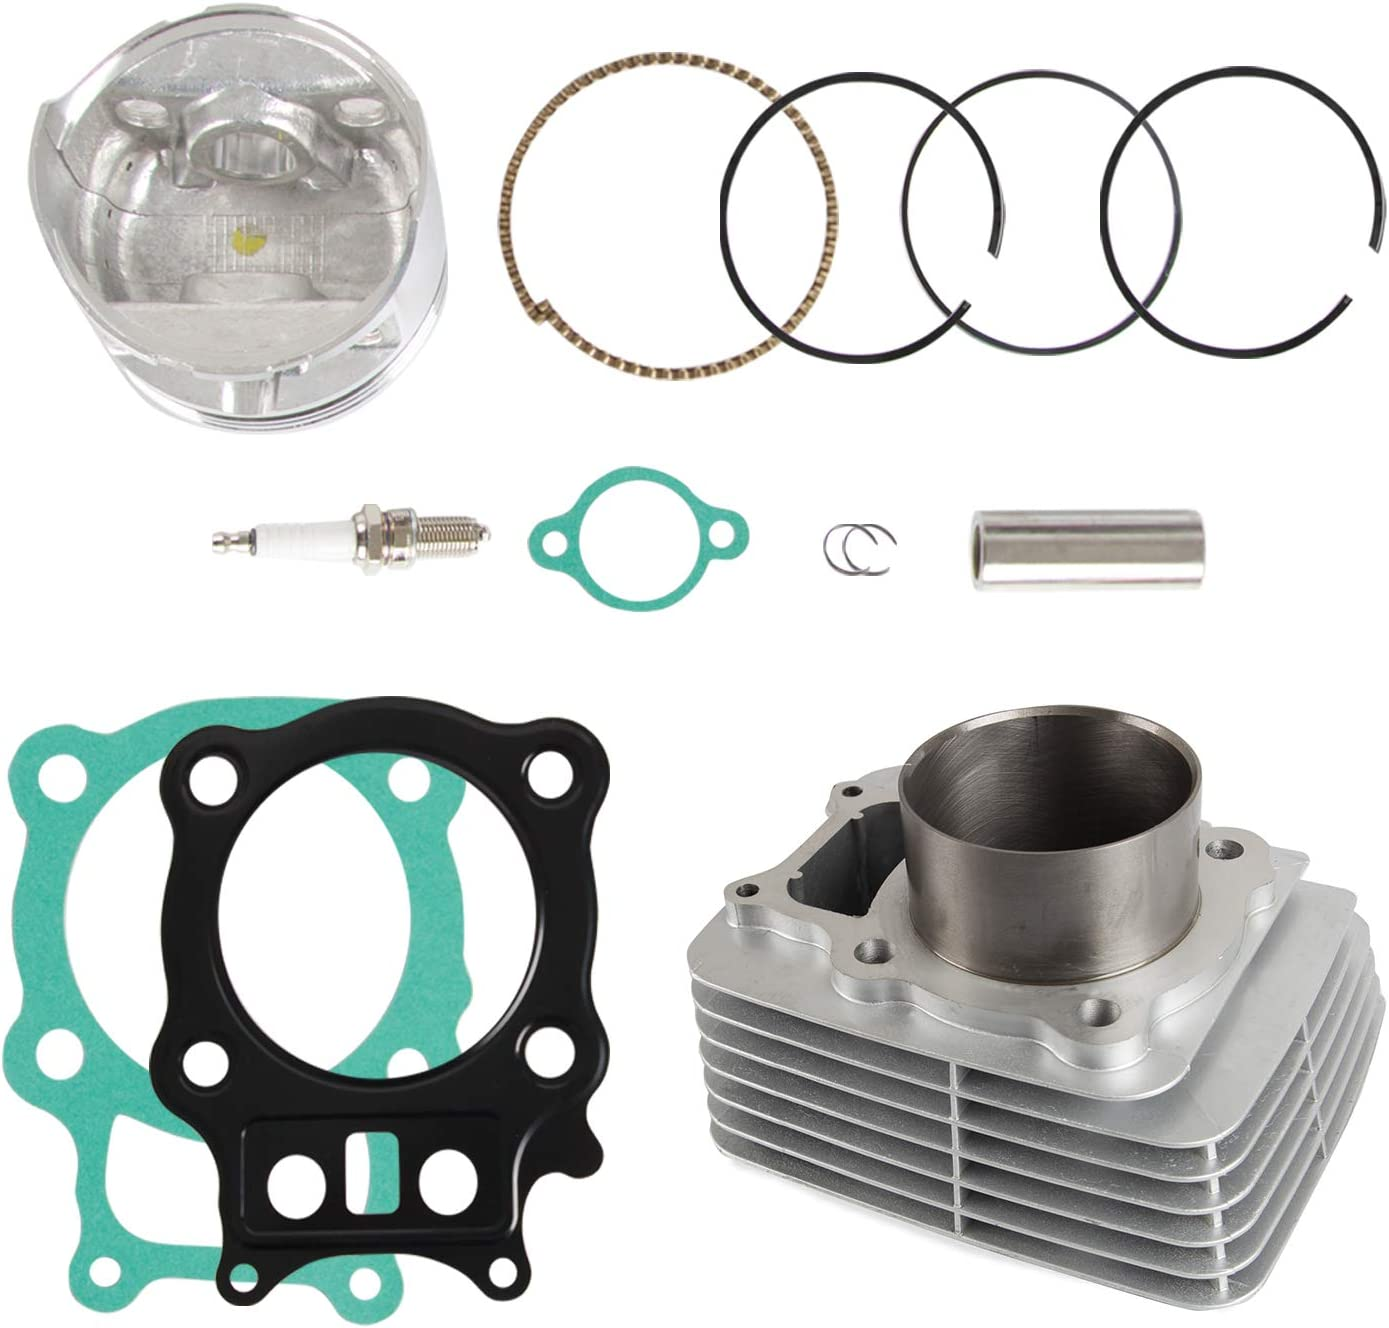 Cylinder Piston Gasket Assemblies Top End Kit Compatible with Honda TRX350 Rancher350 2000-2006 Replace 12100-HN5-670